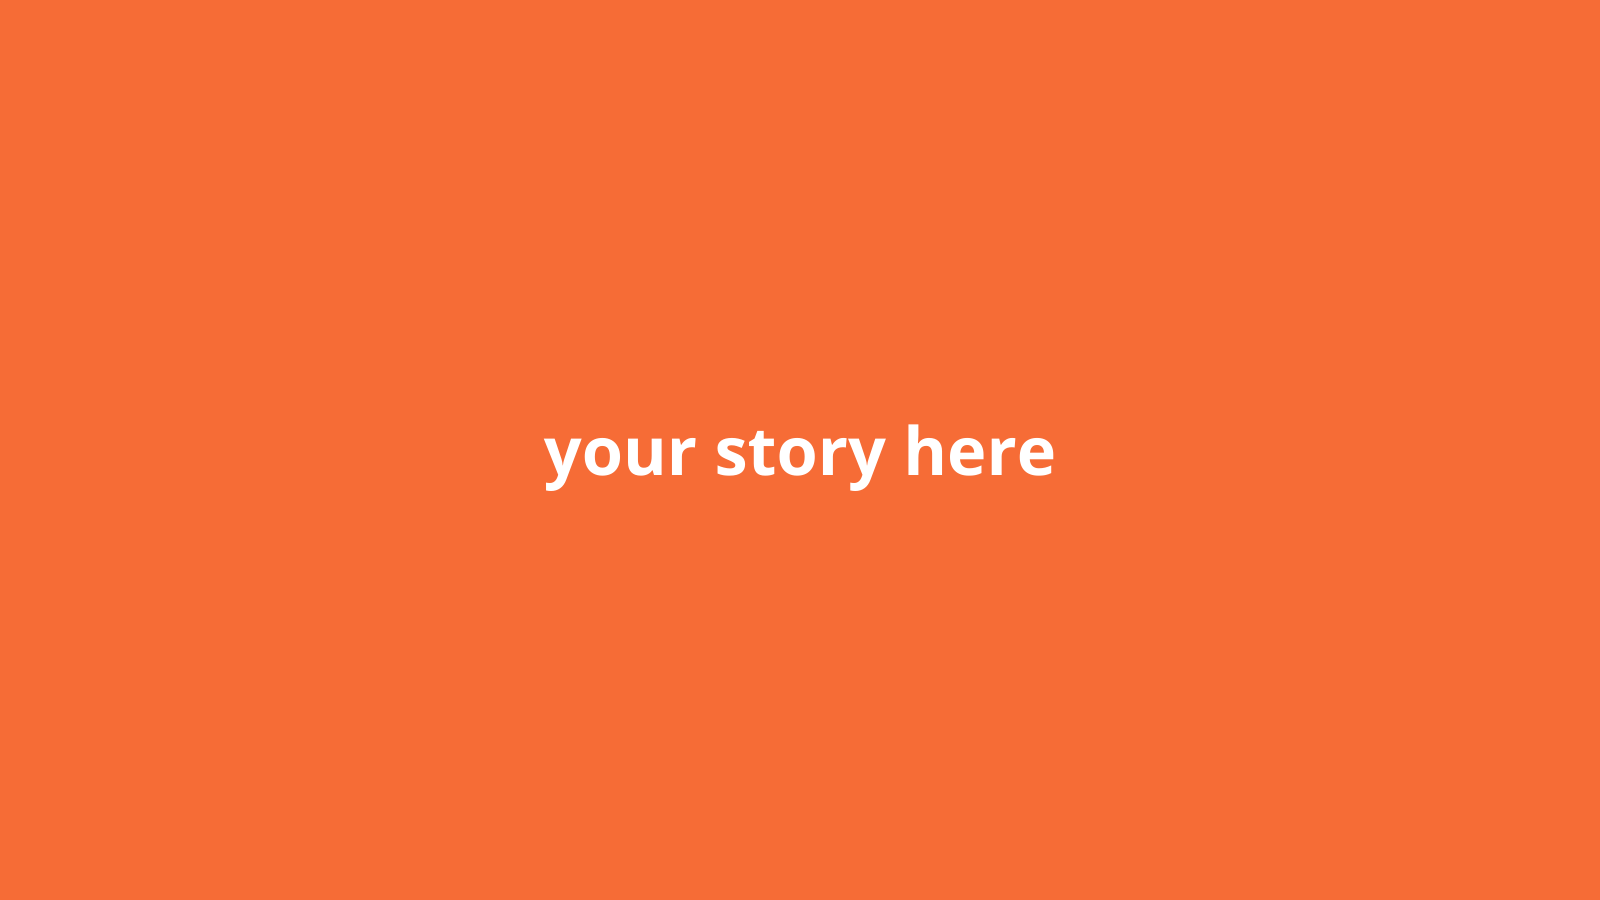 """Orange square with the text """"your story here"""""""